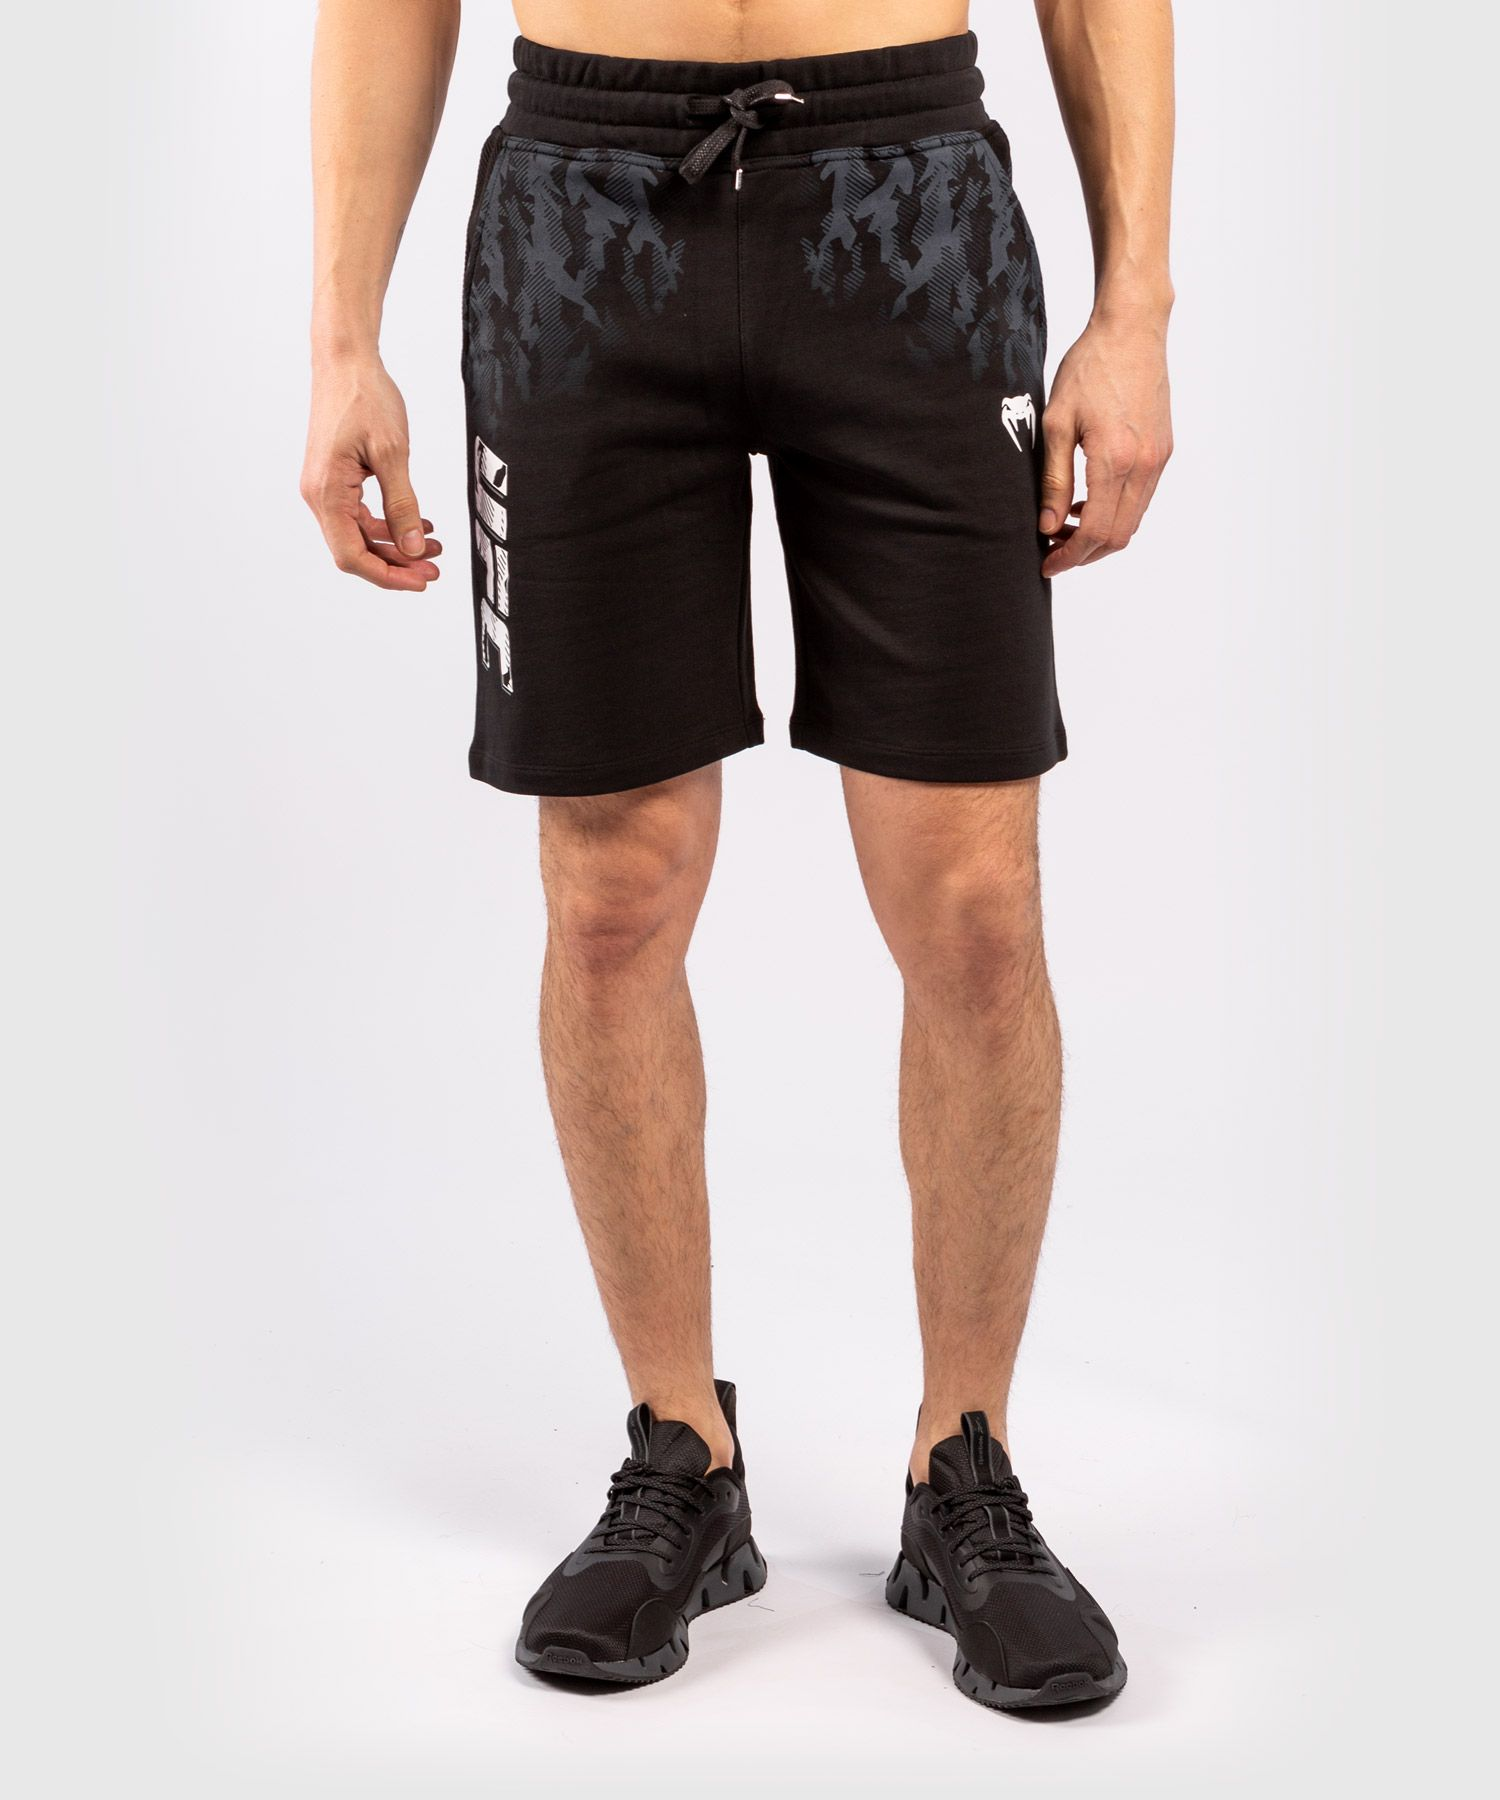 Short de Sport en Coton Homme UFC Venum Authentic Fight Week - Noir